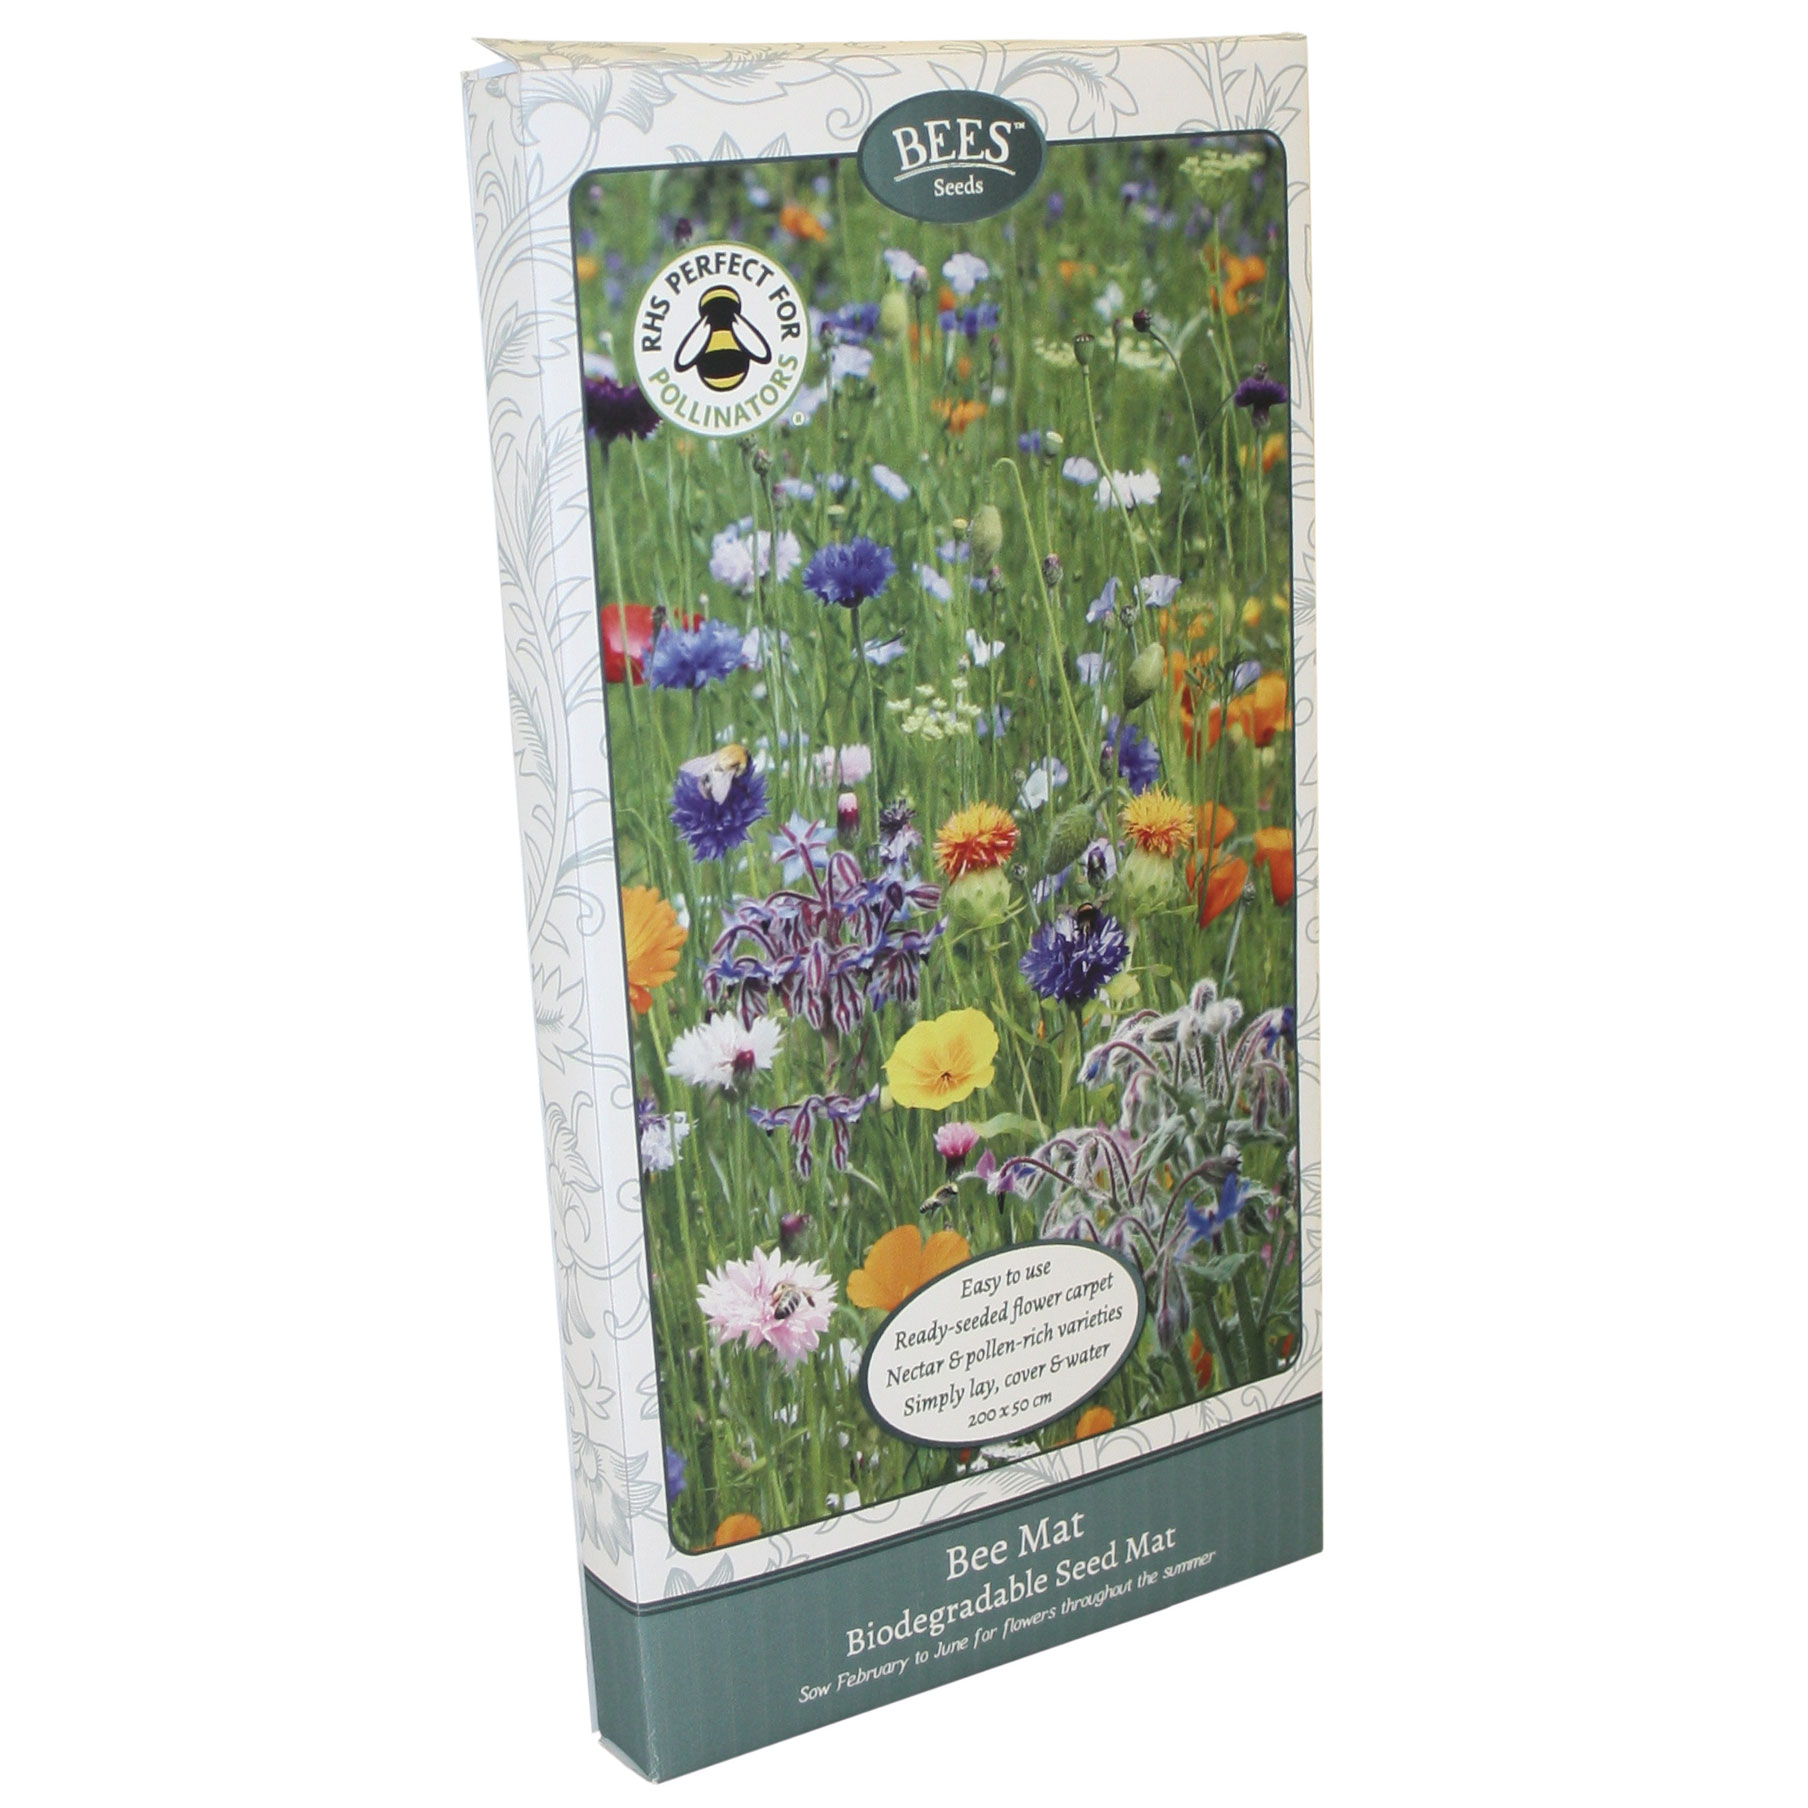 Buy Bees Seeds Seed Mat Bee Mat Seed Carpet Delivery